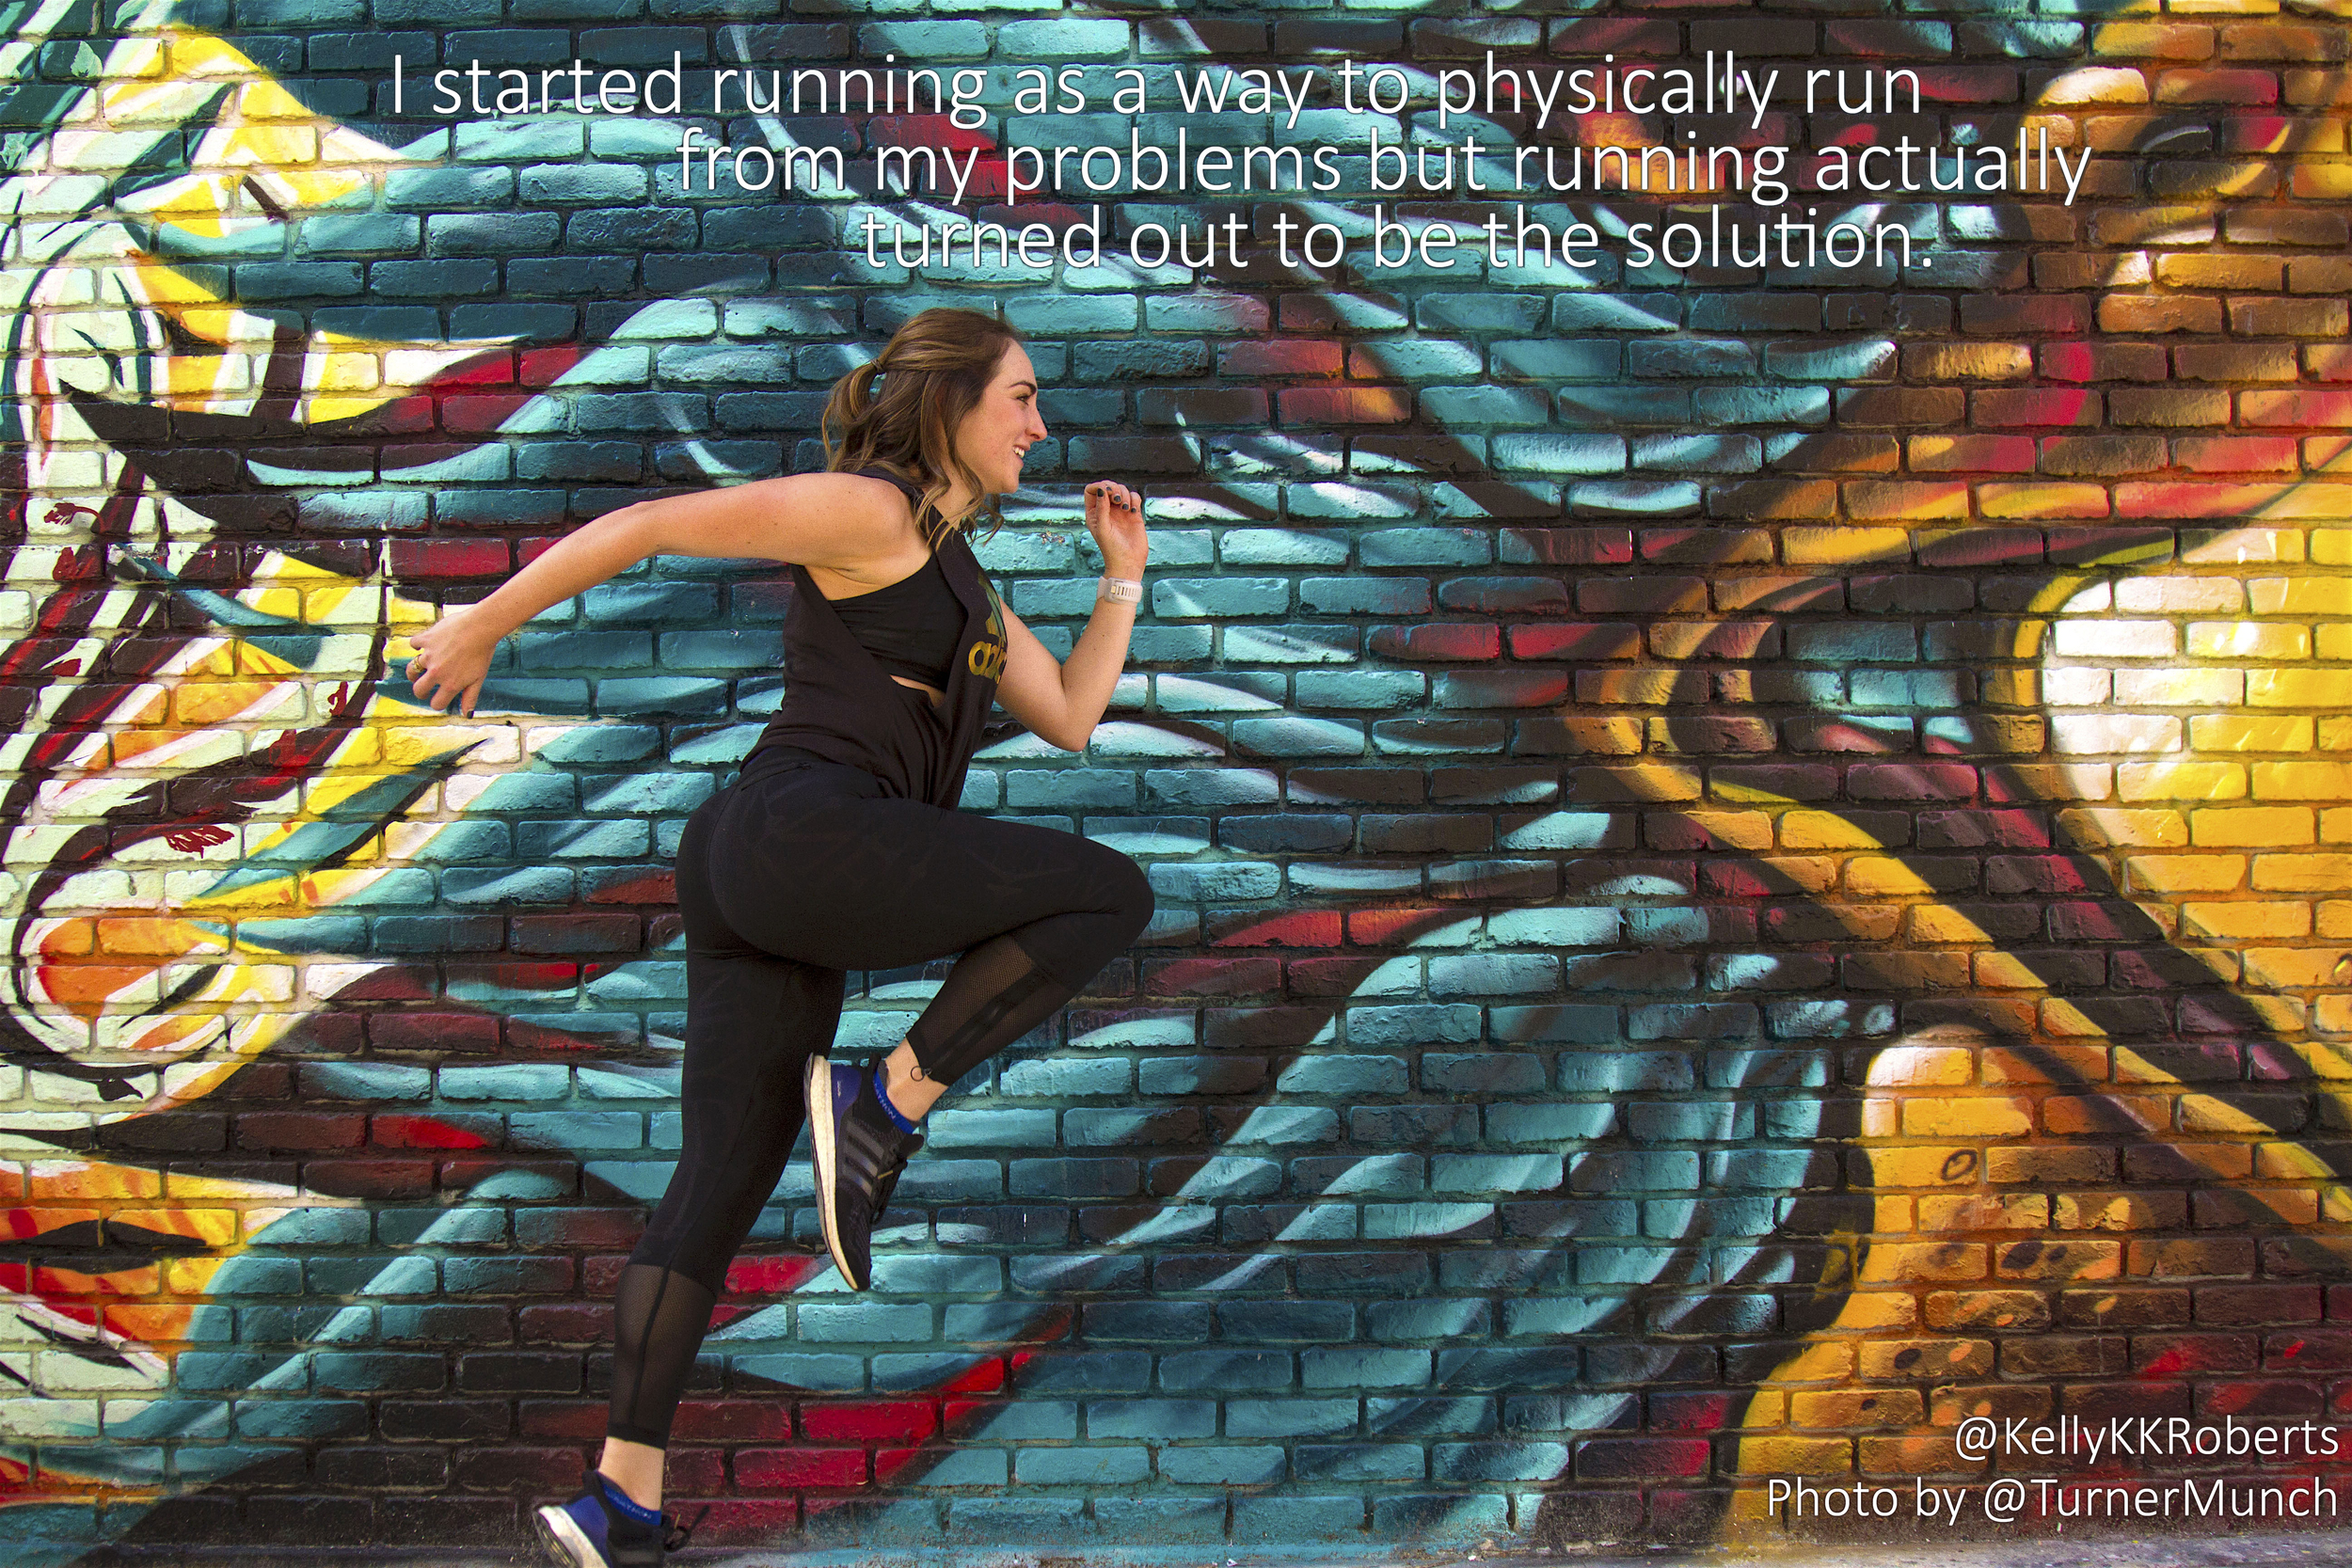 How running from my problems helped me find my purpose